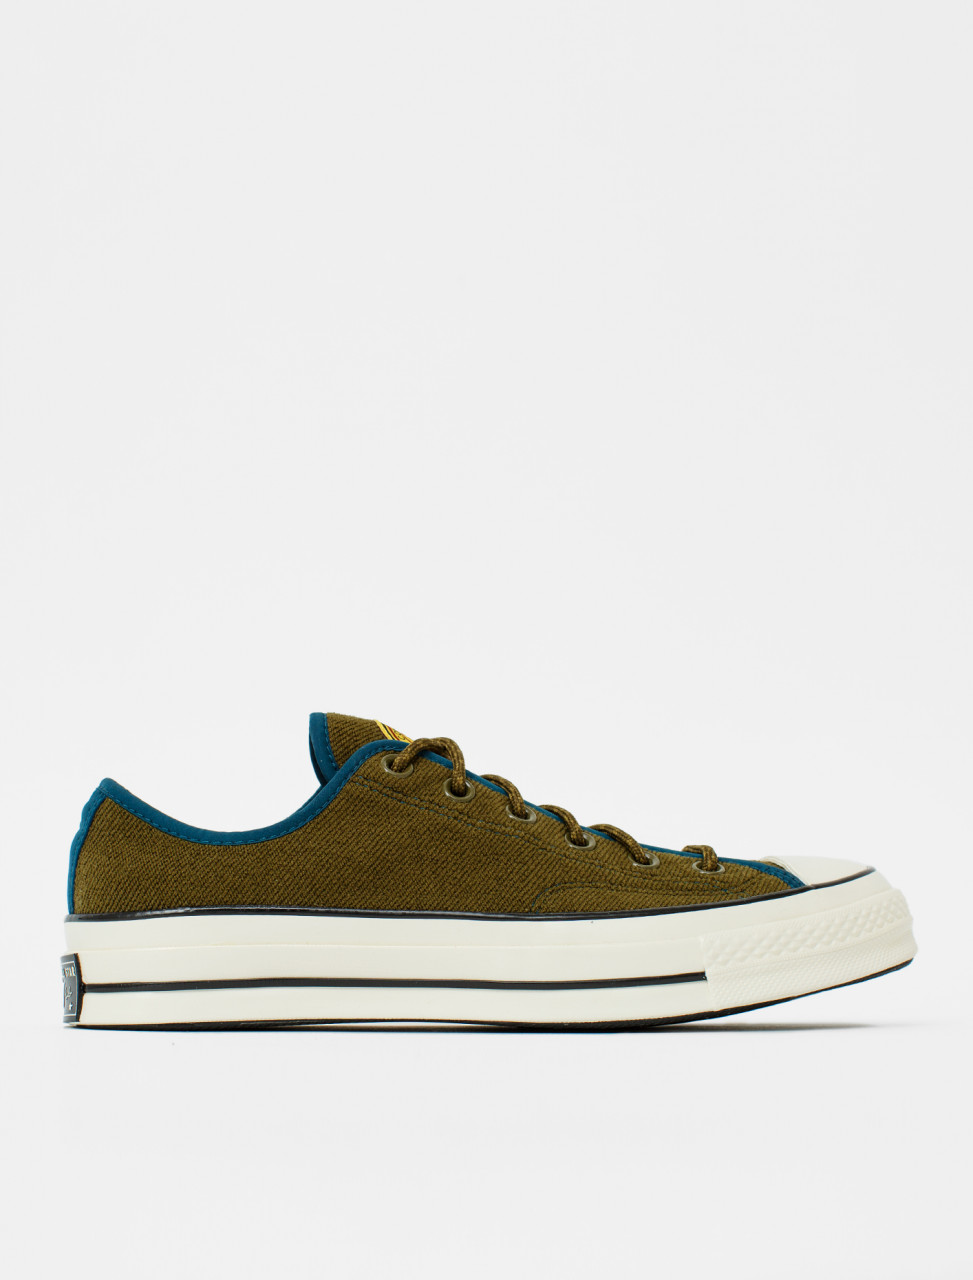 East Village Explorer Chuck 70 Low Sneaker